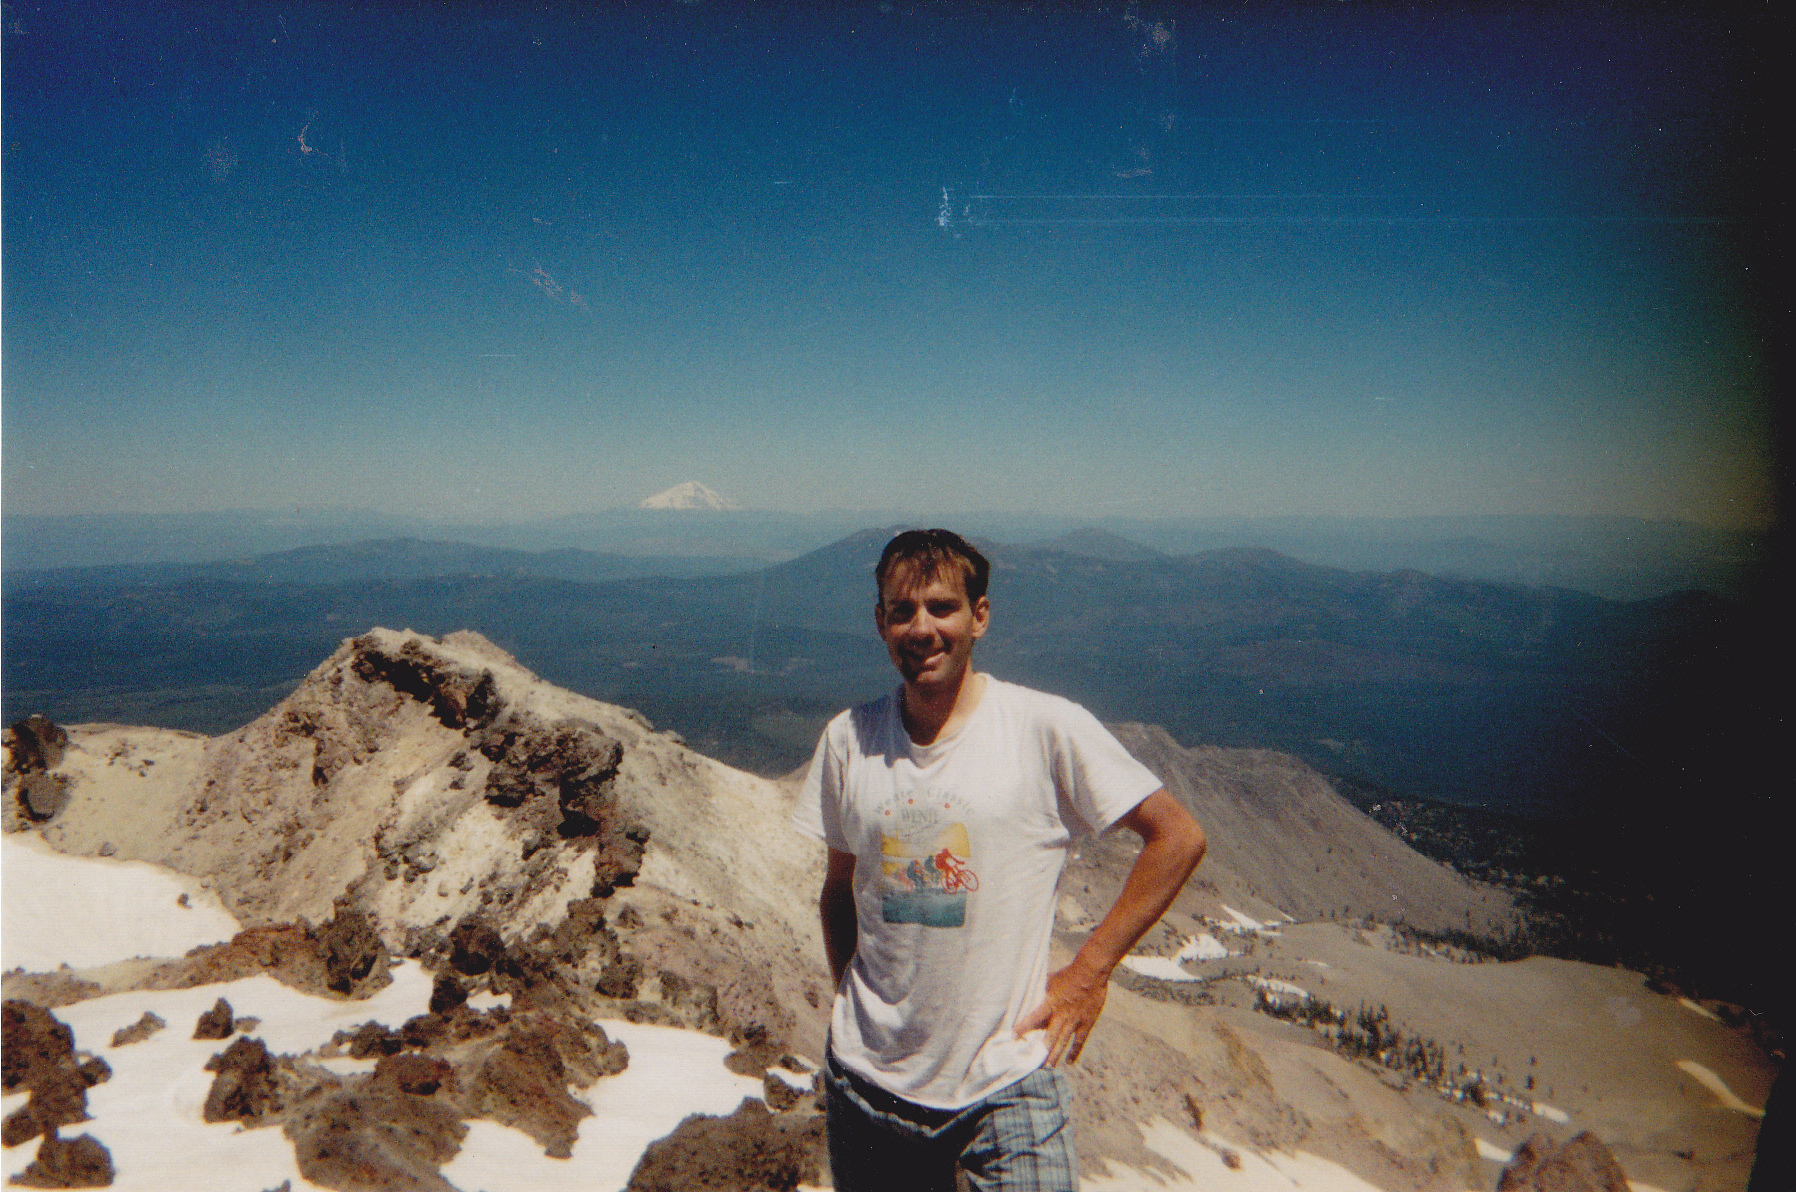 Early Velo Mountaineering mission up Mount Lassen 3190m in California during year 2000